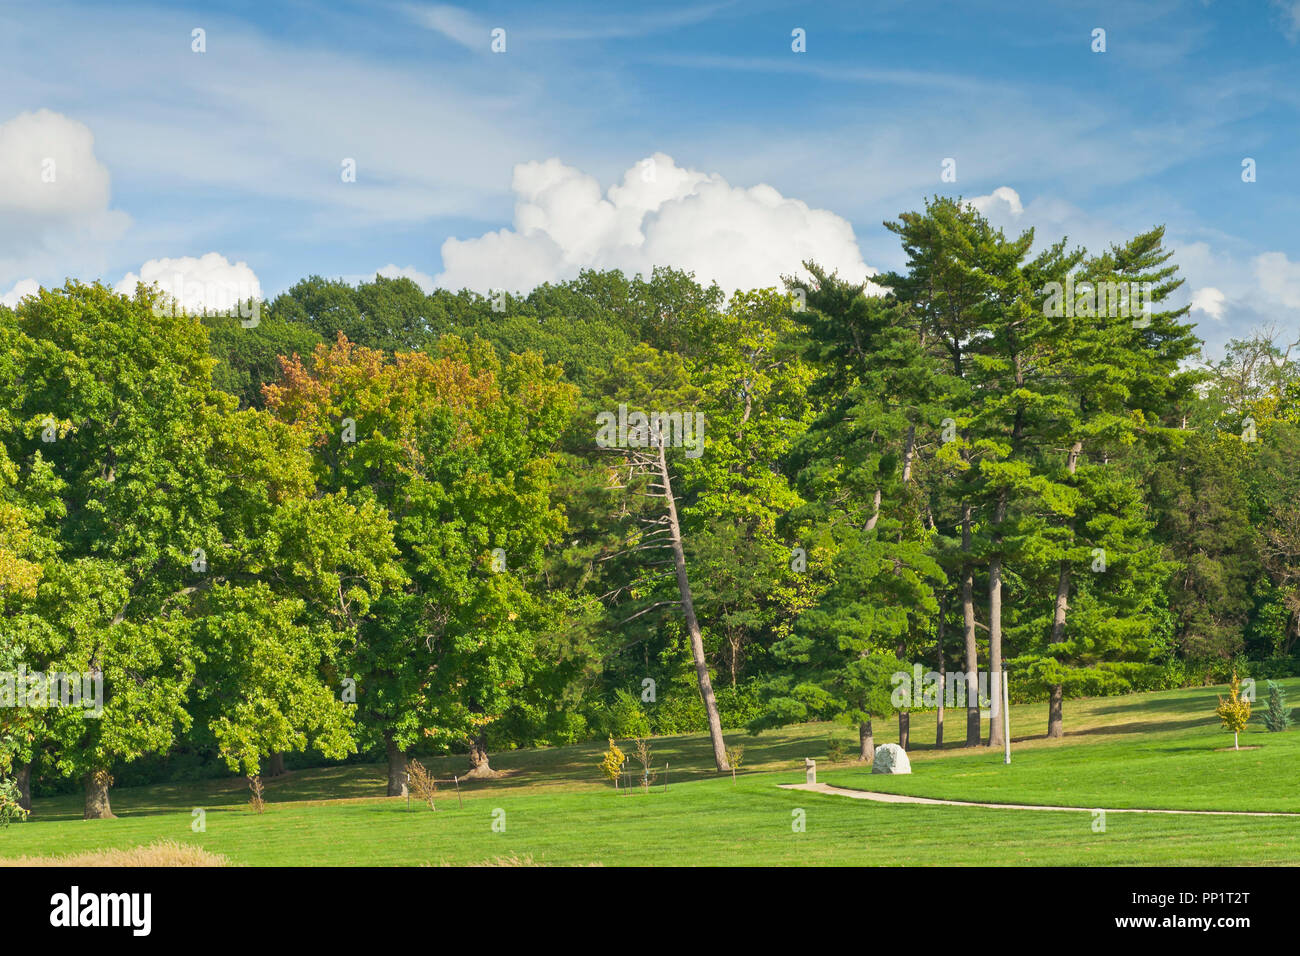 Puffy clouds protrude above trees with a hint of red autumn foliage among the green at St. Louis Forest Park on an afternoon in early October. - Stock Image